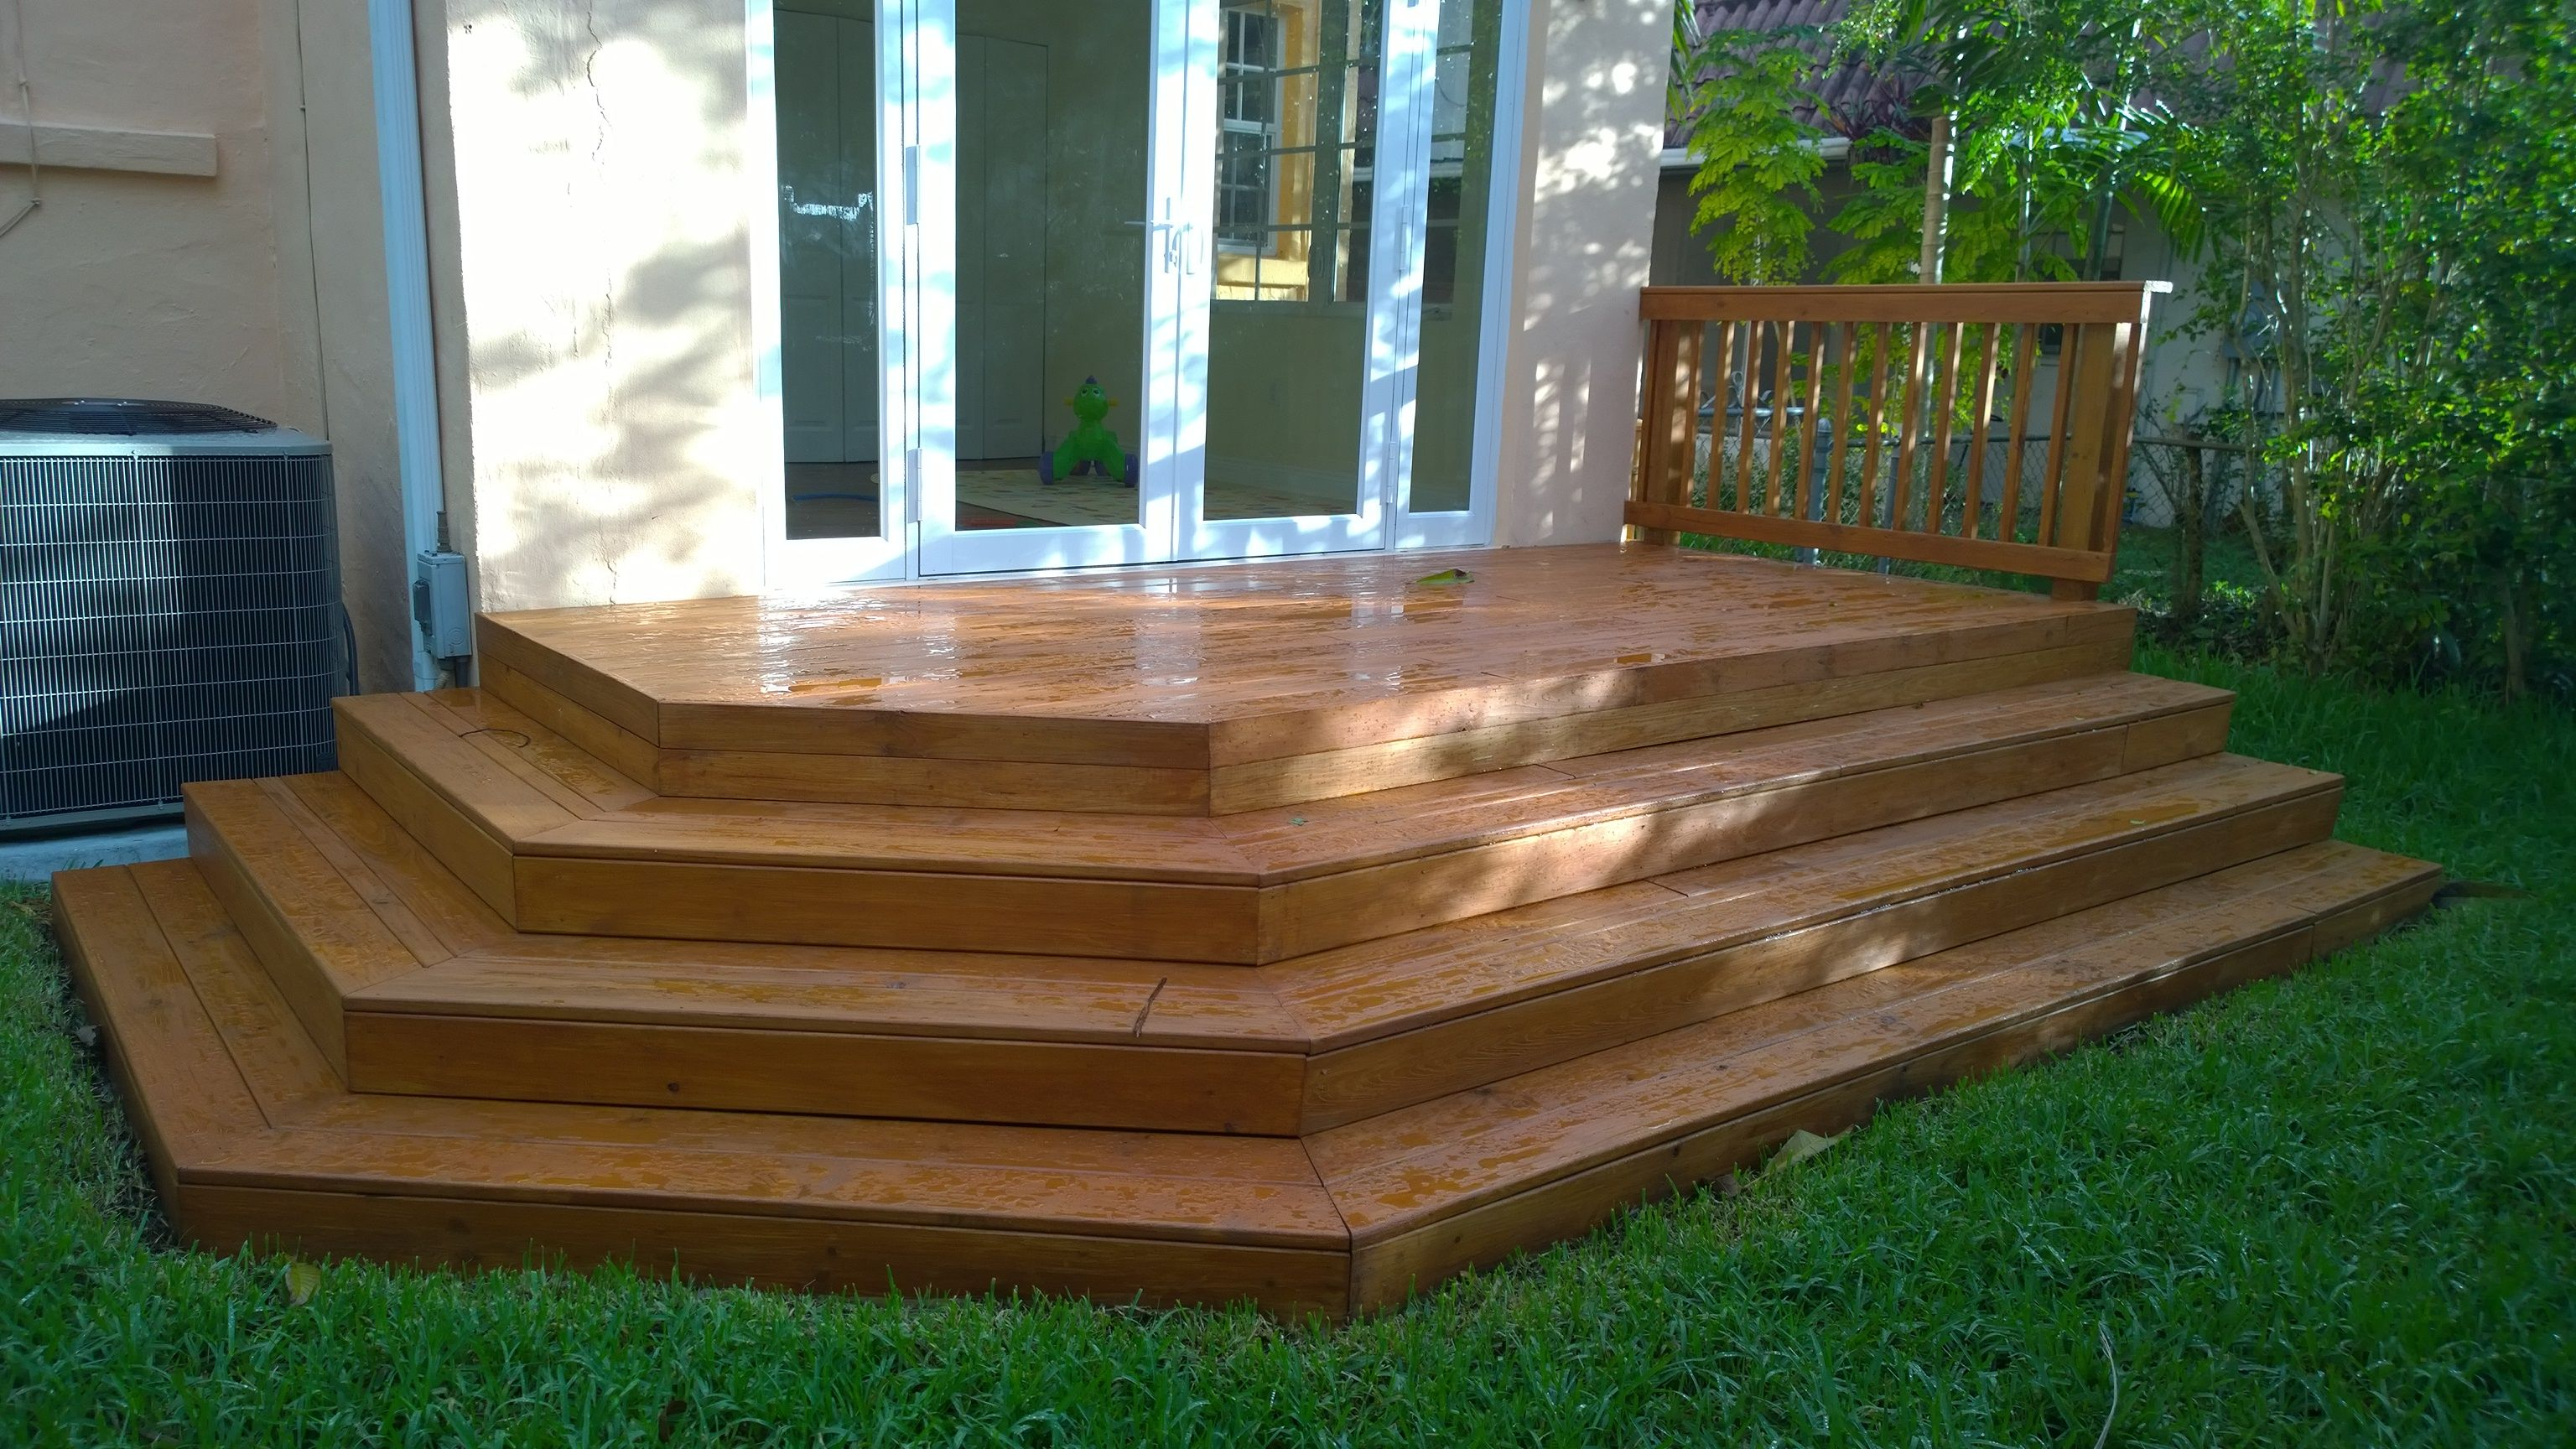 Best Pressure Treated Wood Deck With Wrap Around Stair 400 x 300